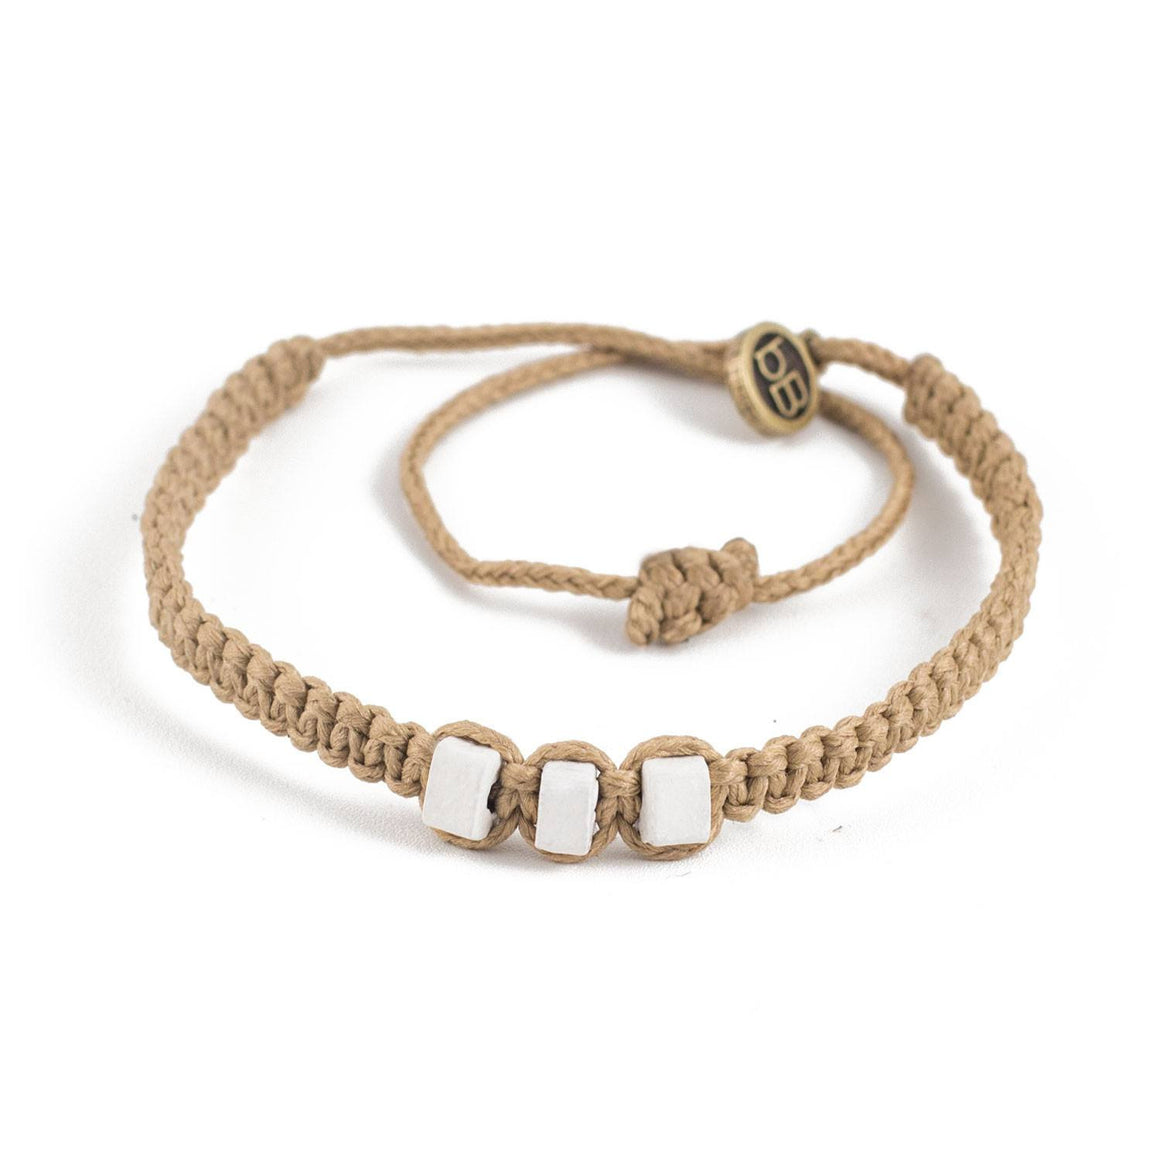 White Chasqui Arabic Camel bracelets that help children cover